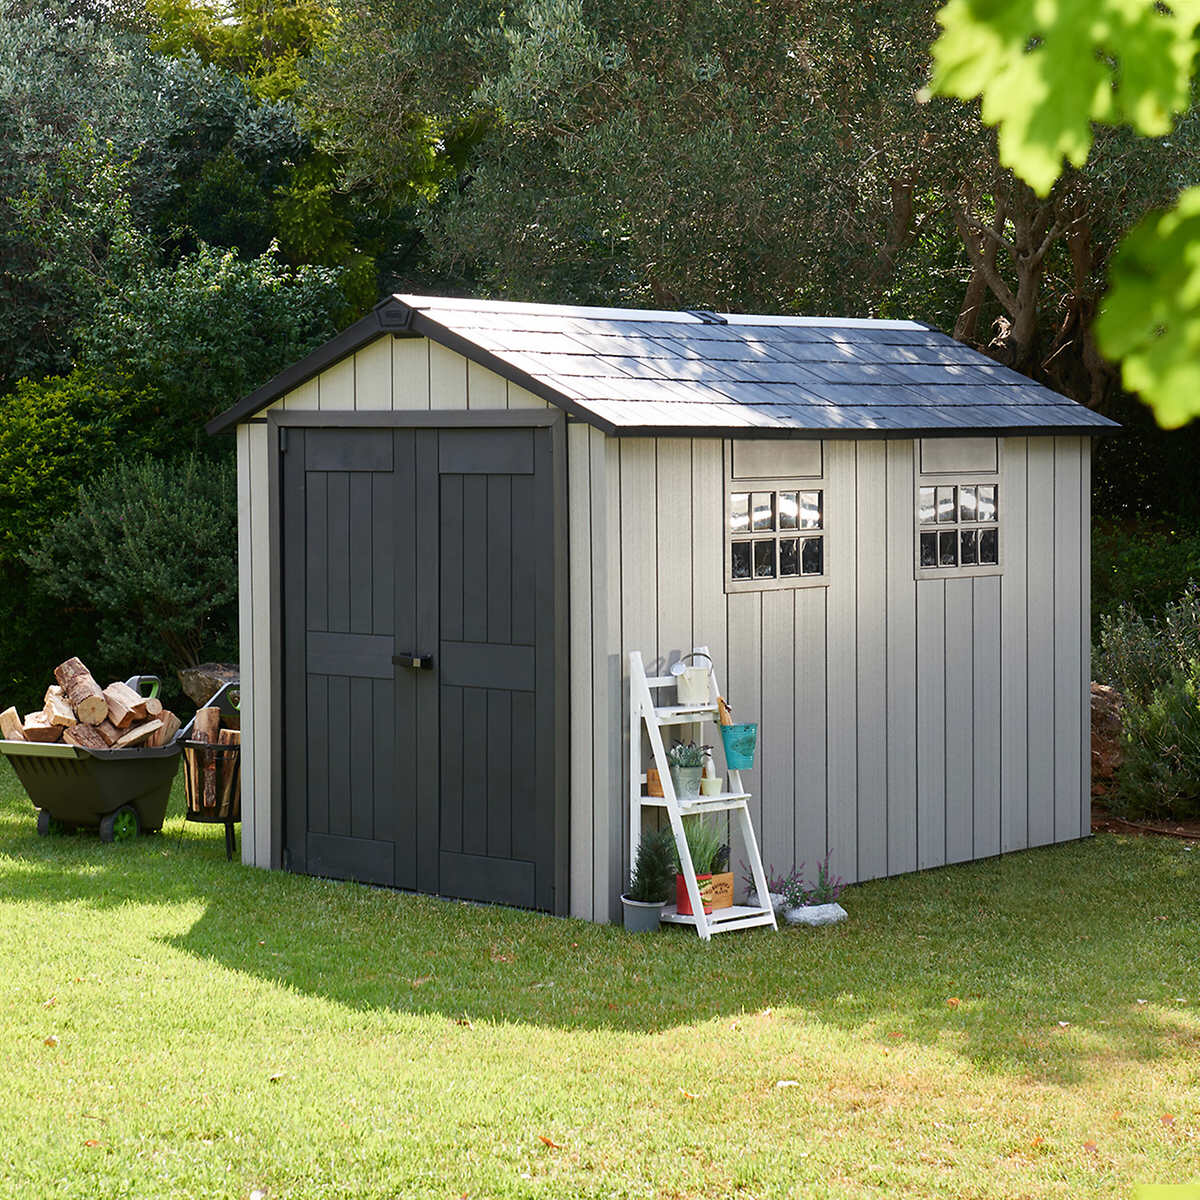 Bosmere A056 Double Door Storage Shed